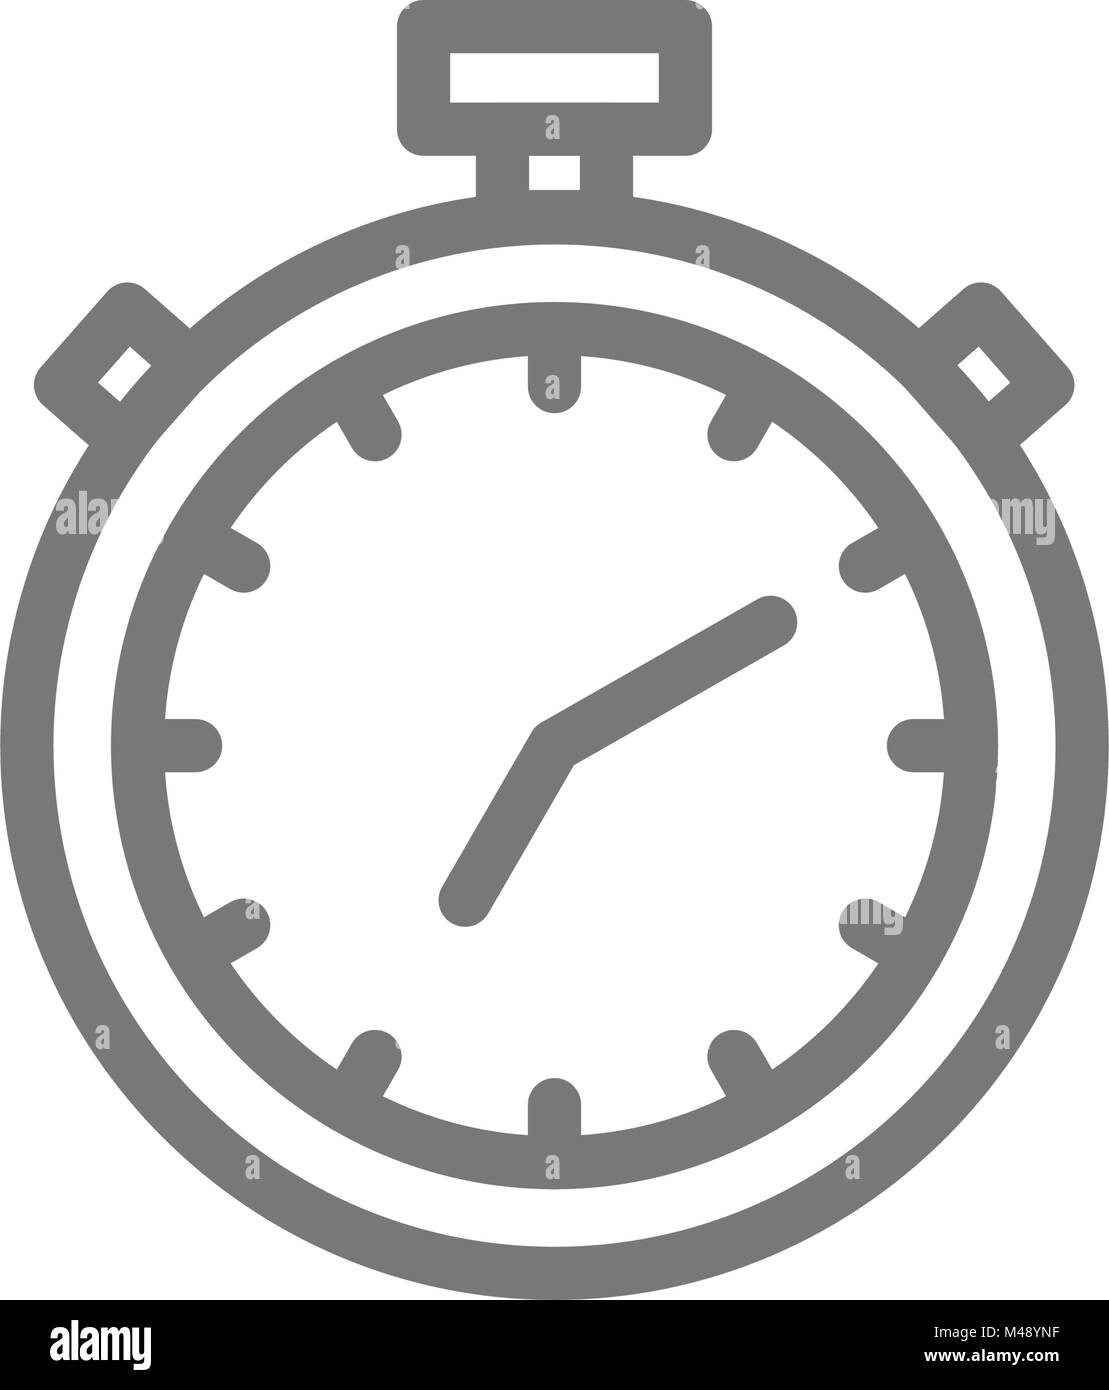 Simple stopwatch and timer line icon. Symbol and sign vector illustration design. Isolated on white background - Stock Image